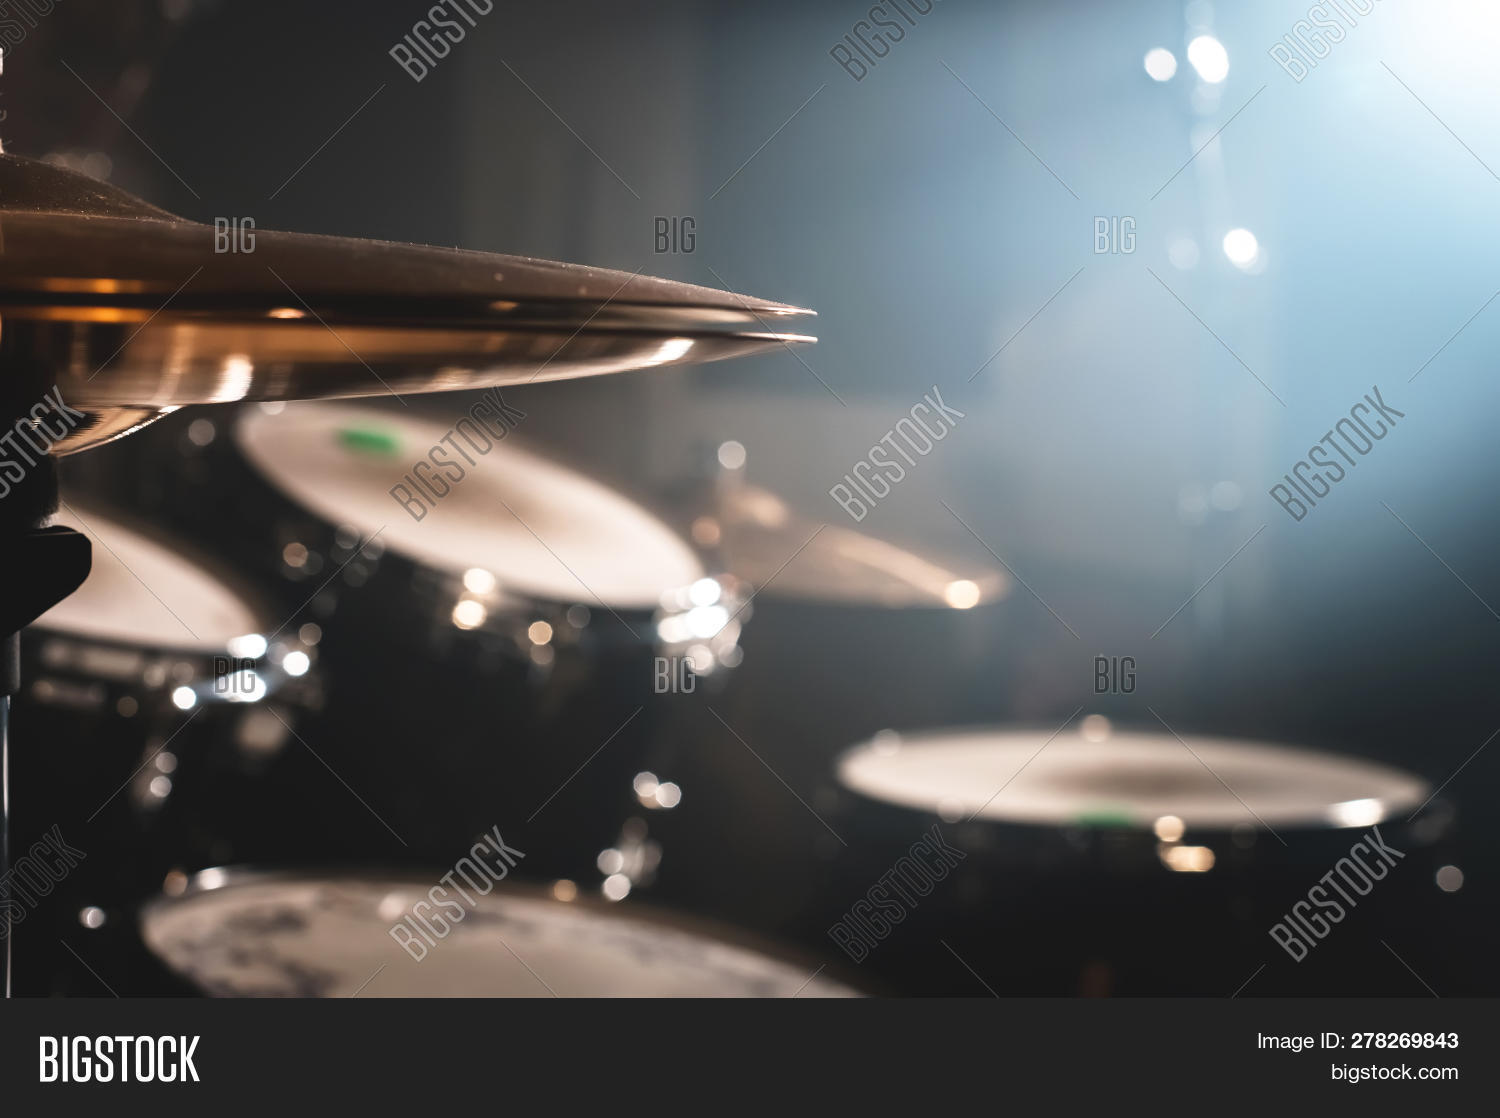 atmospheric,background,band,bang,barrels,beat,blue,chromium,circle,closeup,concert,contrast,copper,cymbal,dark,detail,drum,drummer,equipment,focus,golden,hobby,indoors,instrument,jazz,kit,leisure,light,metal,metallic,modern,music,musical,nobody,object,orange,percussion,plate,popular,professional,rays,rhythm,rock,set,smoke,soft,sound,stage